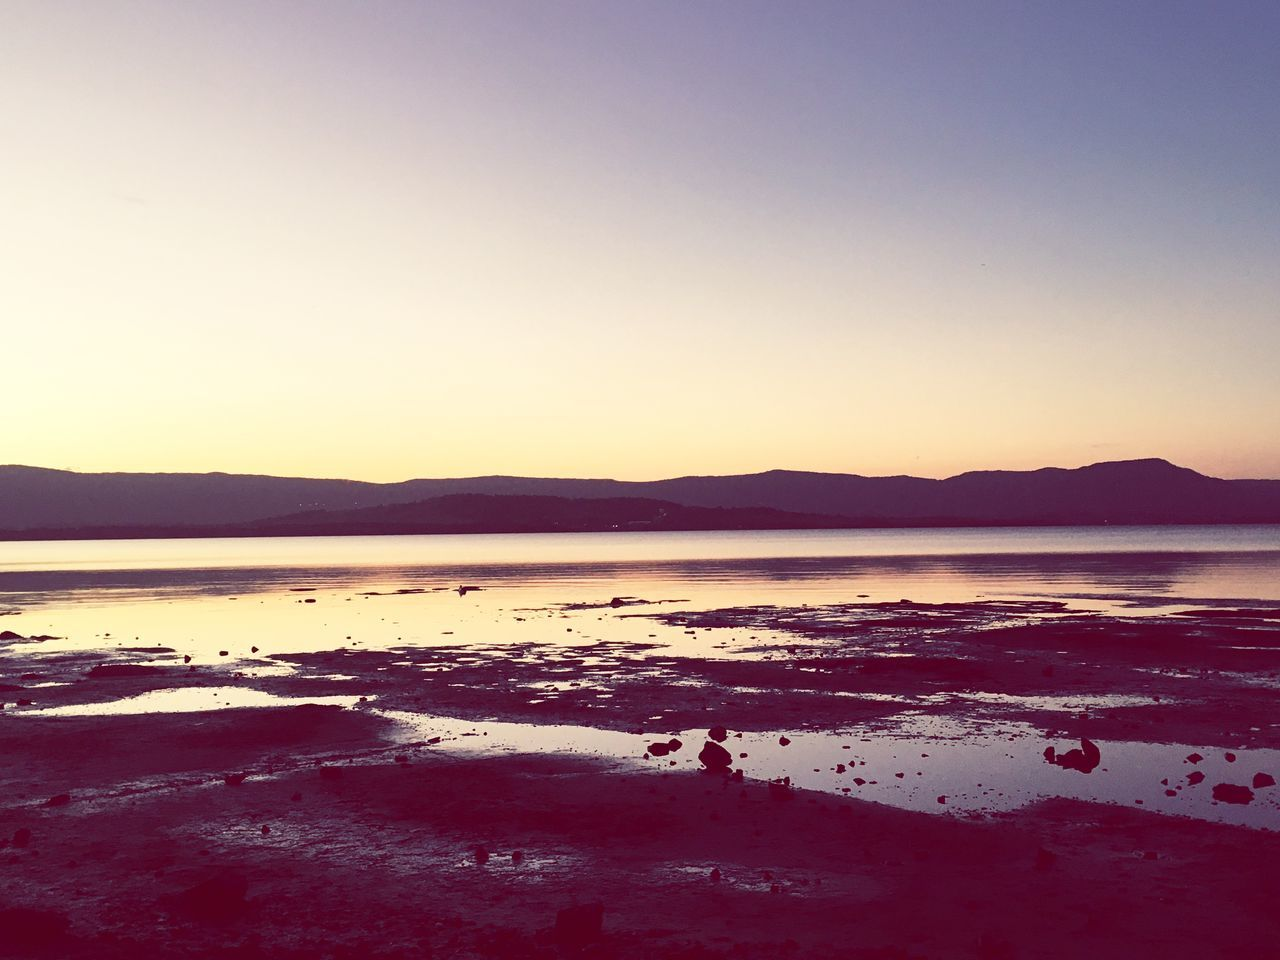 water, nature, sea, tranquility, scenics, tranquil scene, beauty in nature, silhouette, beach, copy space, sunset, clear sky, mountain, no people, outdoors, sky, travel destinations, day, salt - mineral